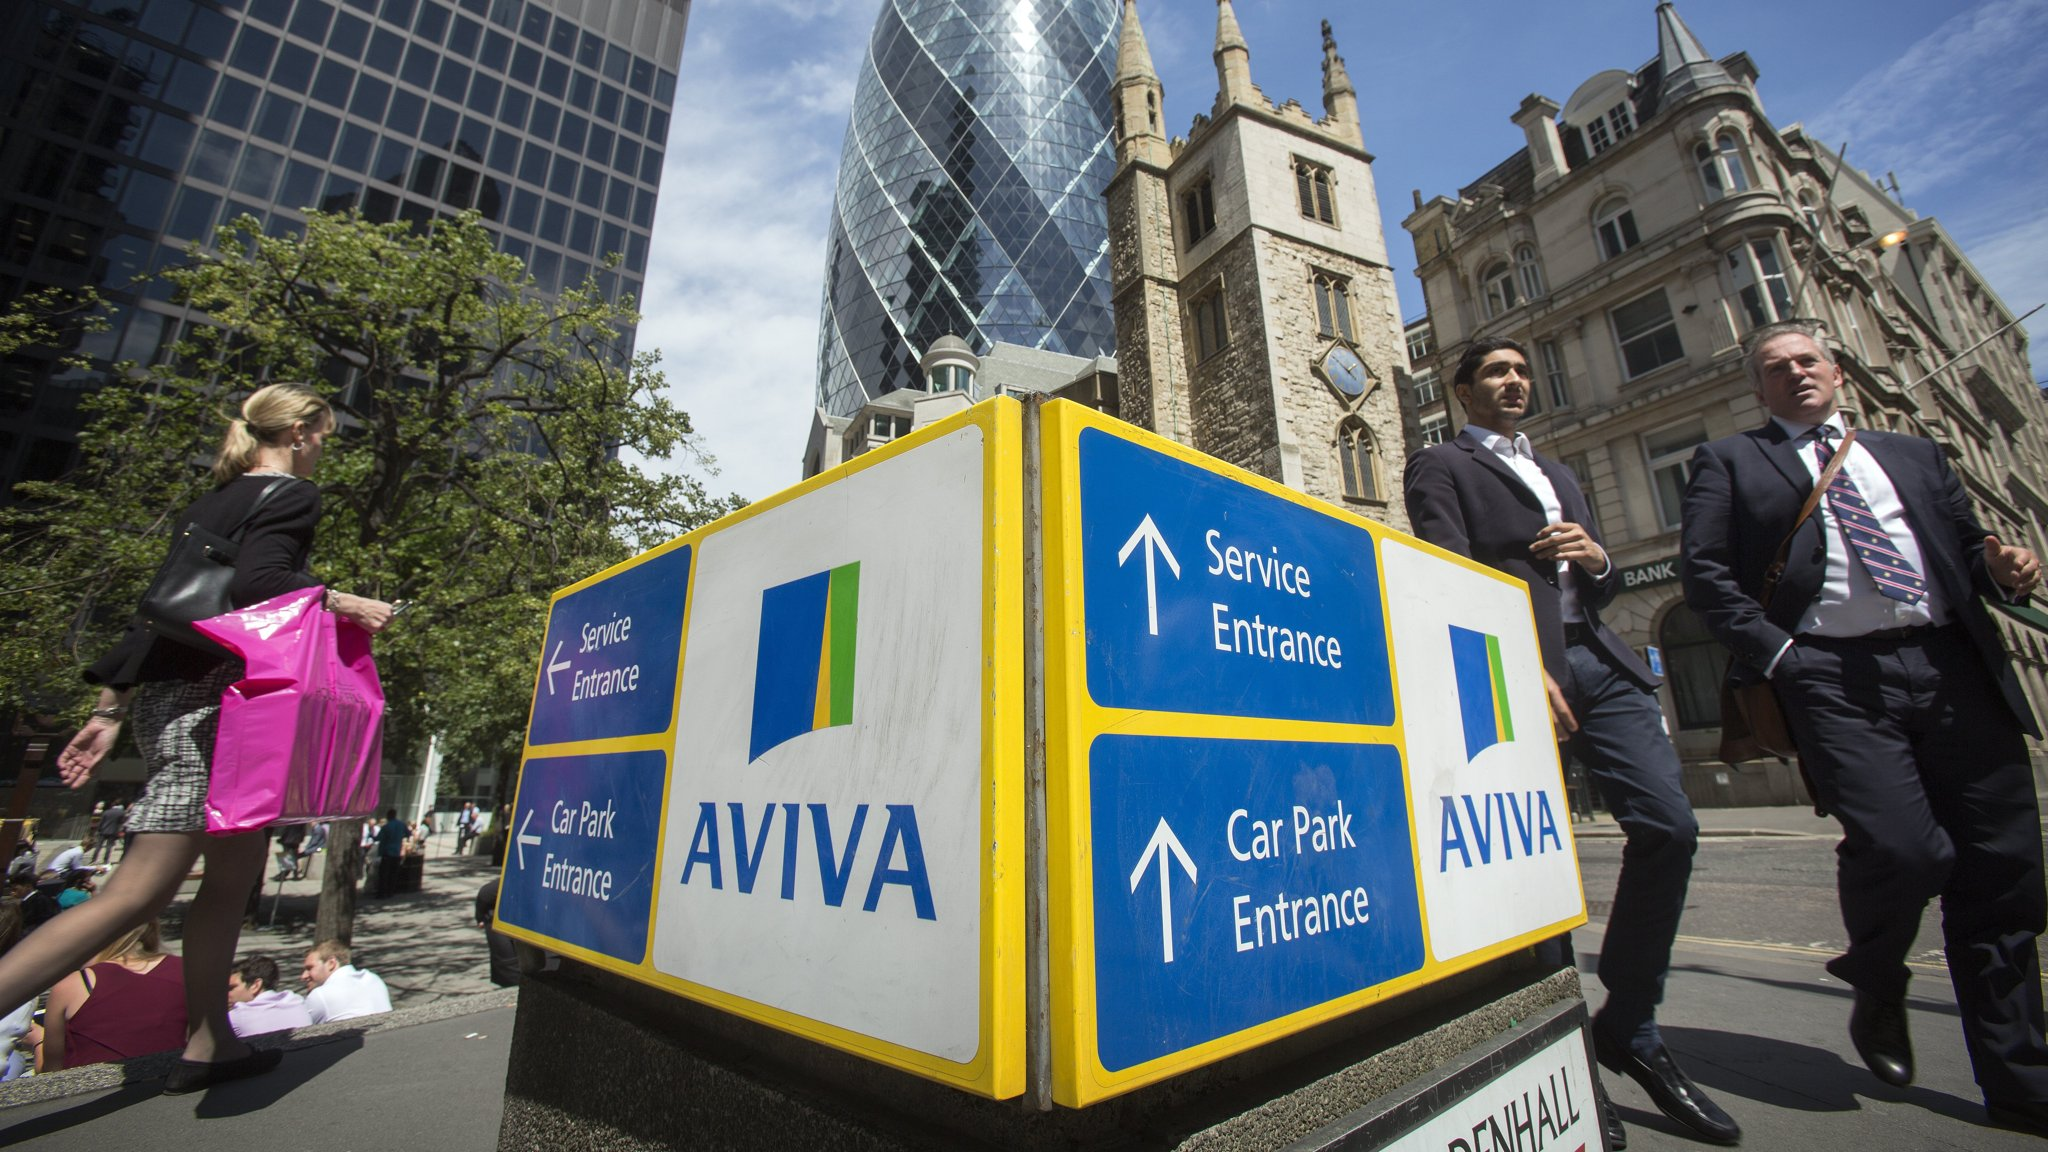 Aviva finds best use of £3bn is not too complex a question